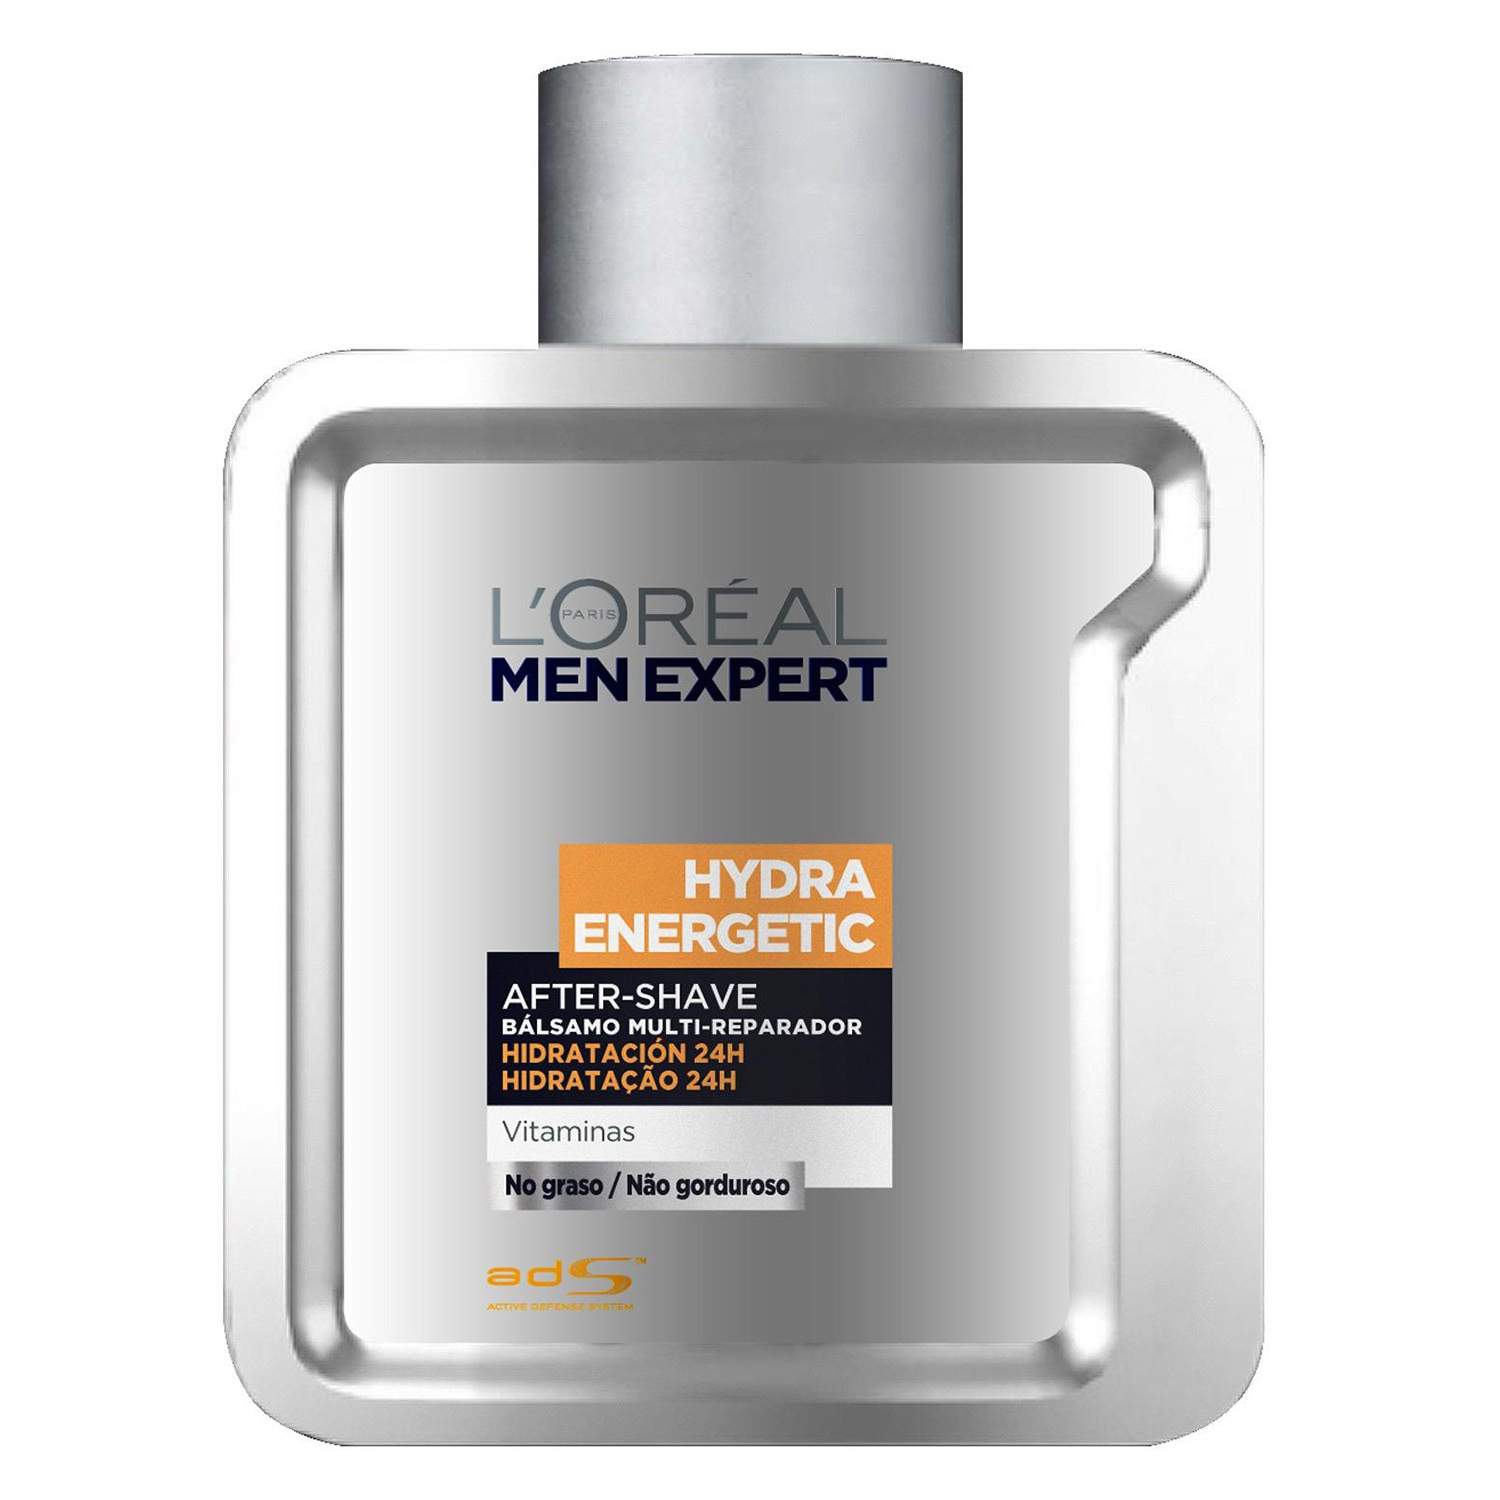 After Shave Hydra Energetic